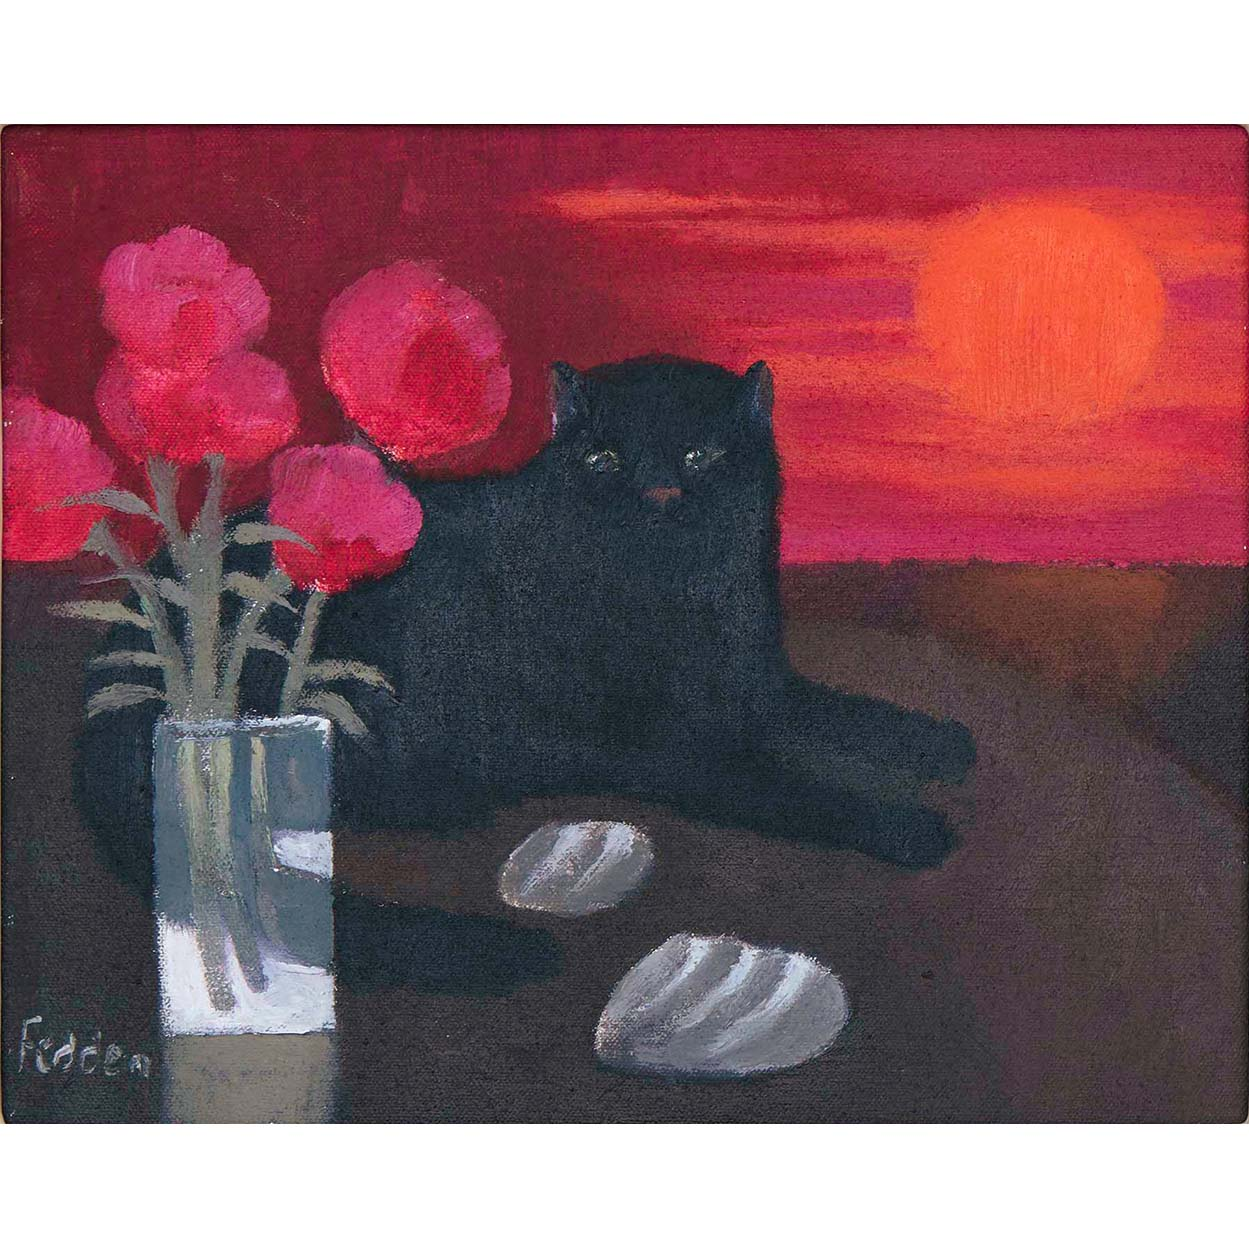 MARY FEDDEN. CAT IN THE SUNSET. 2001